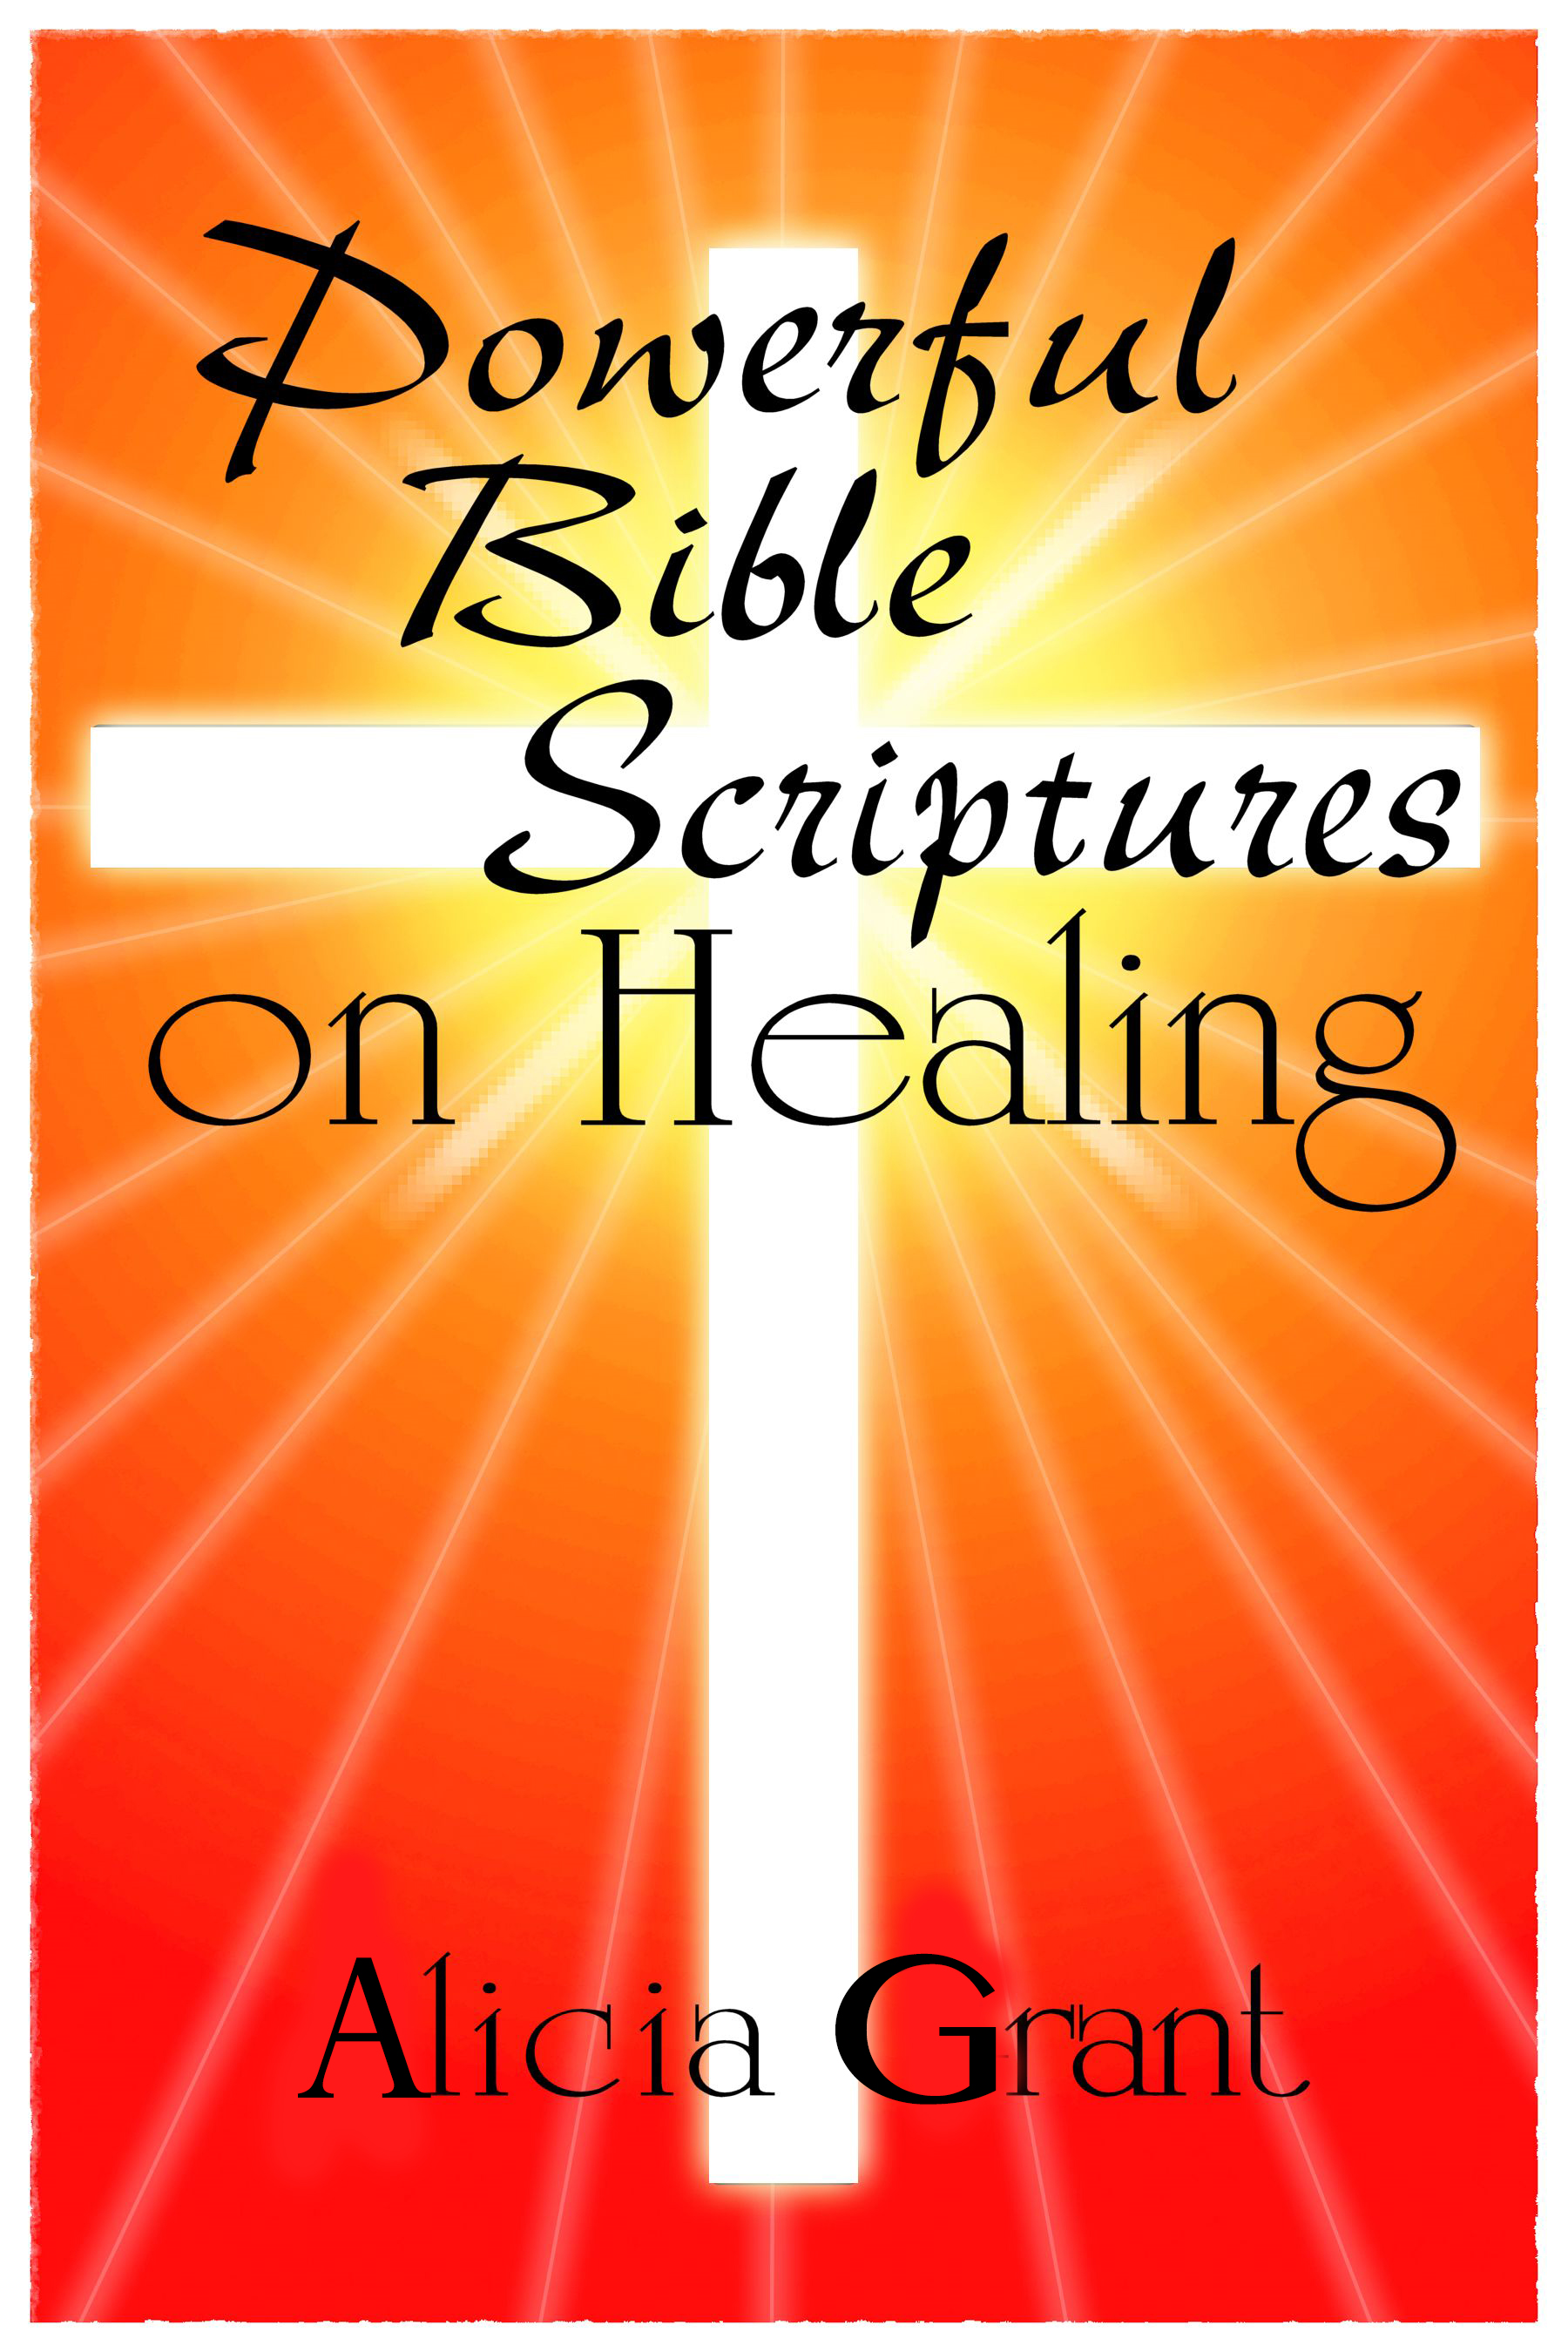 Powerful Bible Scriptures on Healing By: Alicia Grant